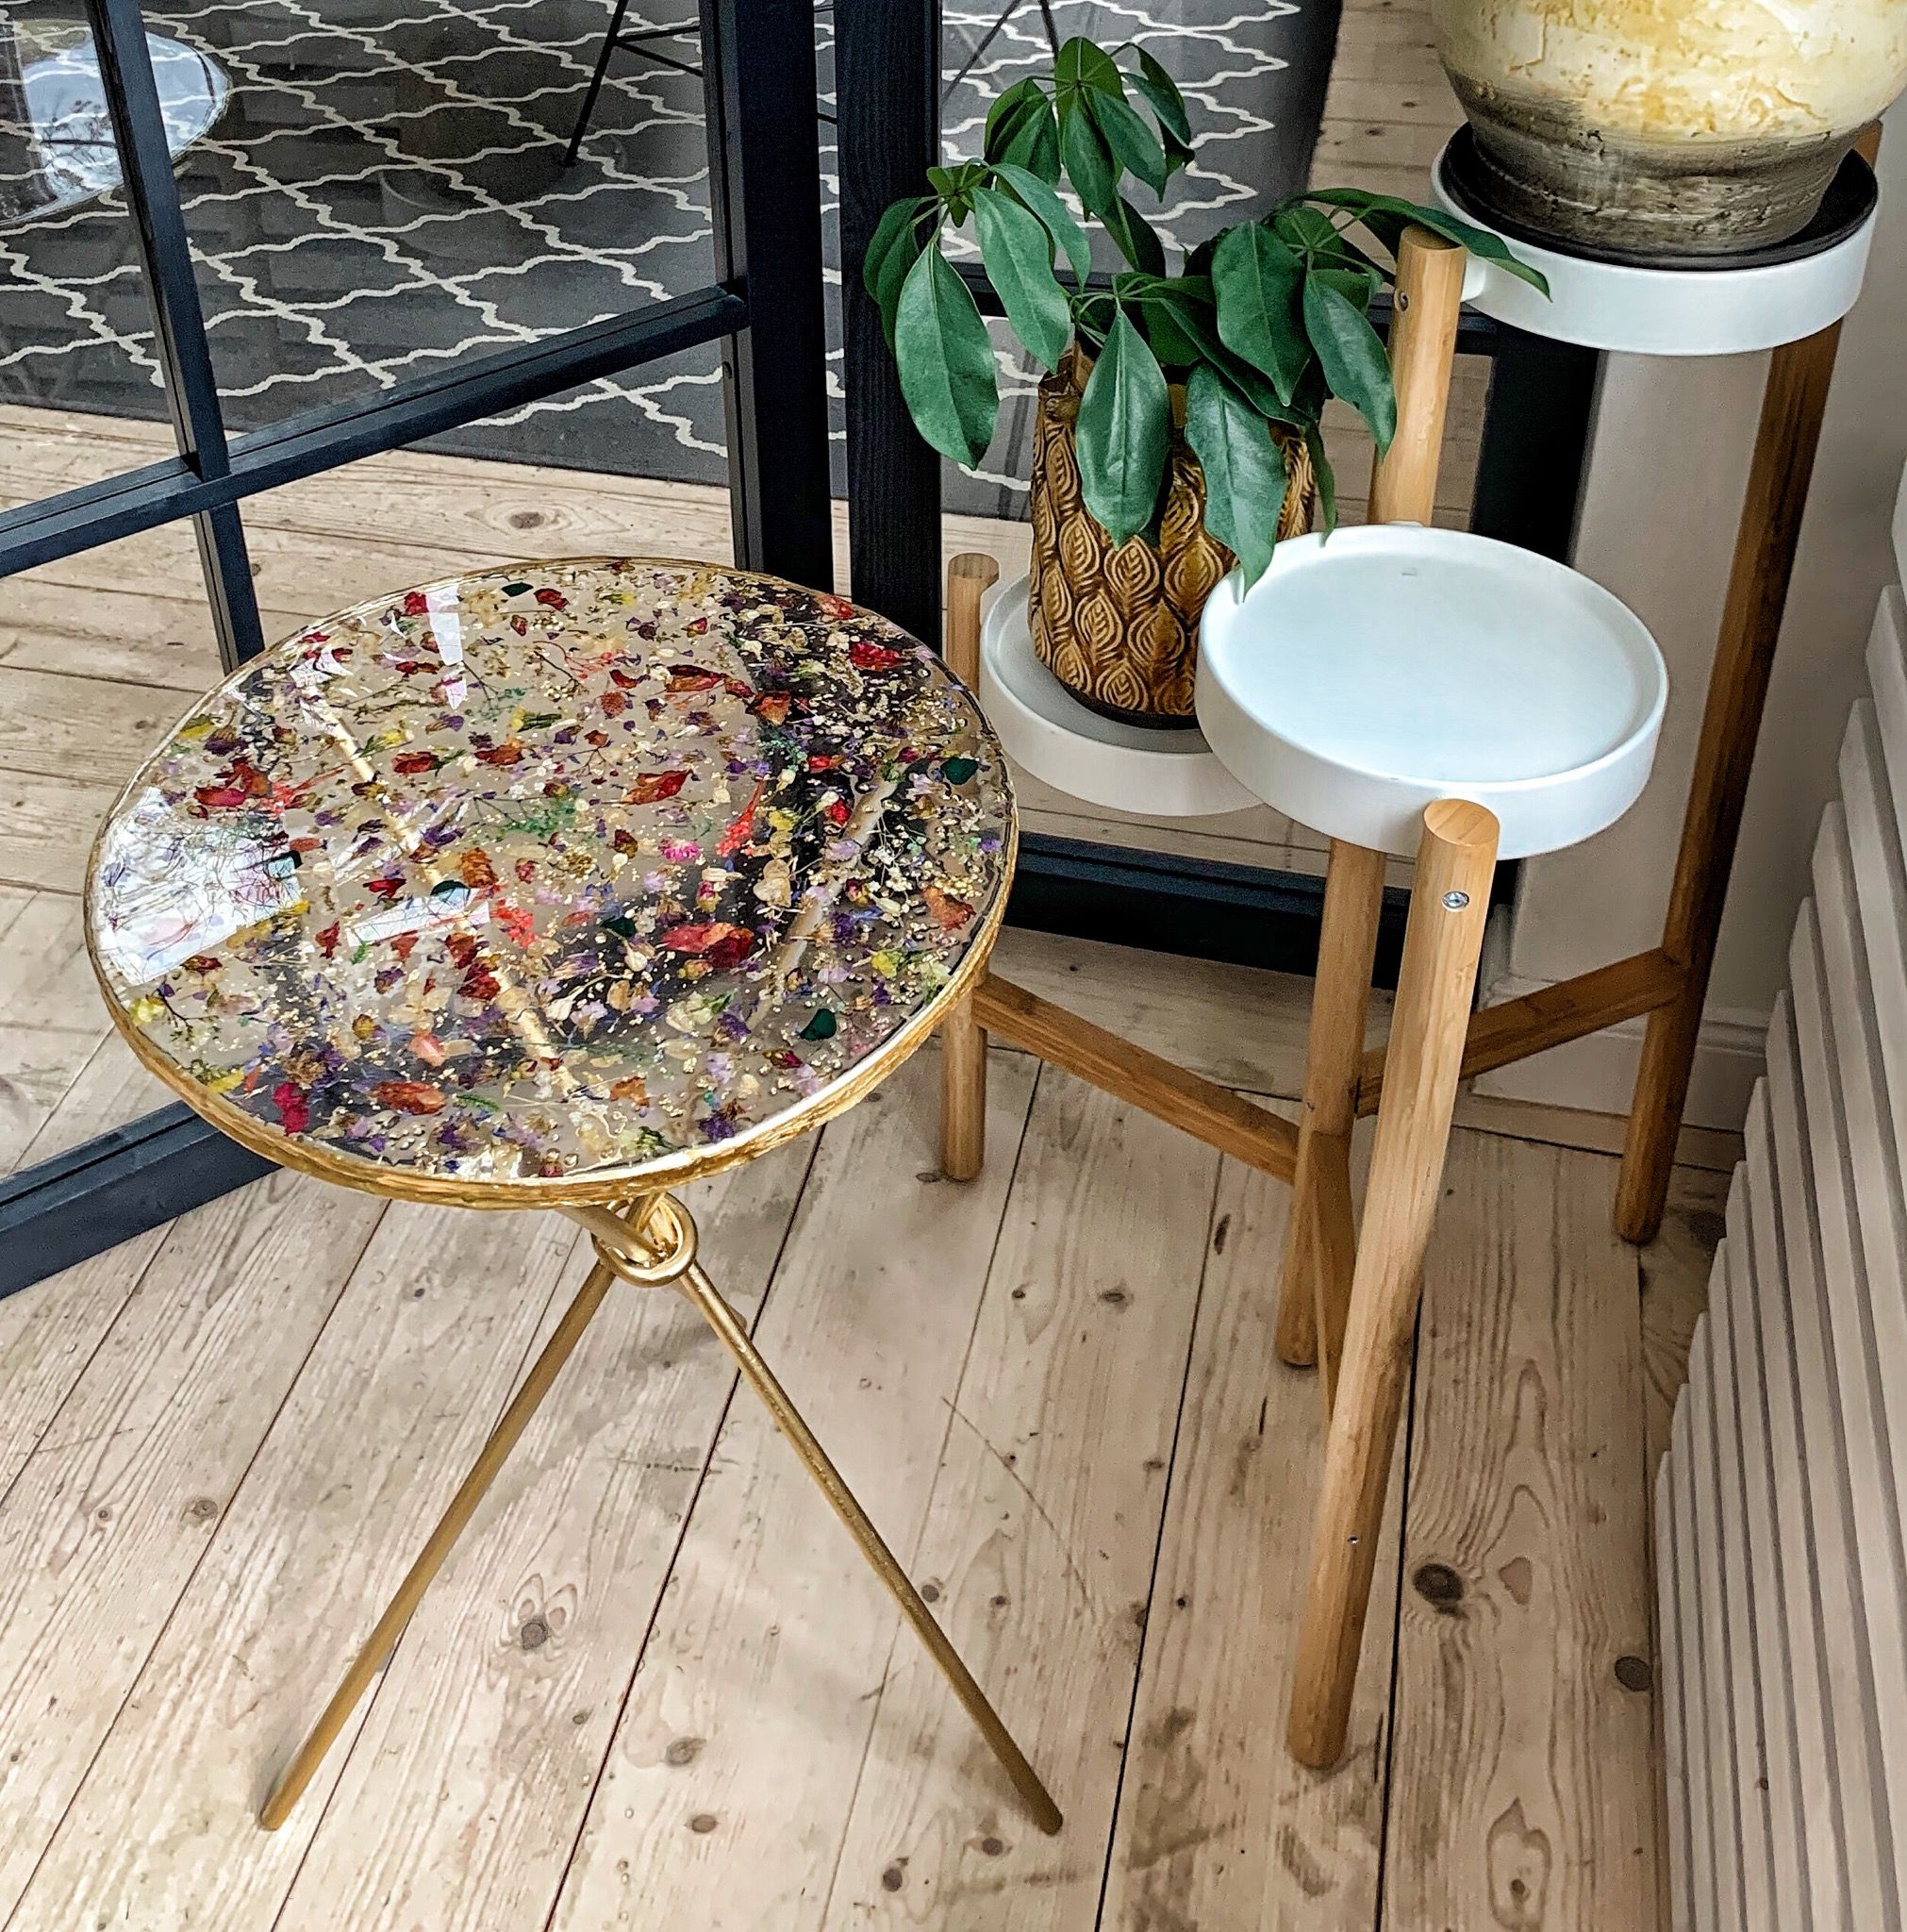 Epoxy Resin Table With Pressed Flowers Clear Round Coffee Table Gold Side Table Top With Dry Flowers Epoxy Resin Table Resin Table Diy Resin Art [ 2048 x 2022 Pixel ]